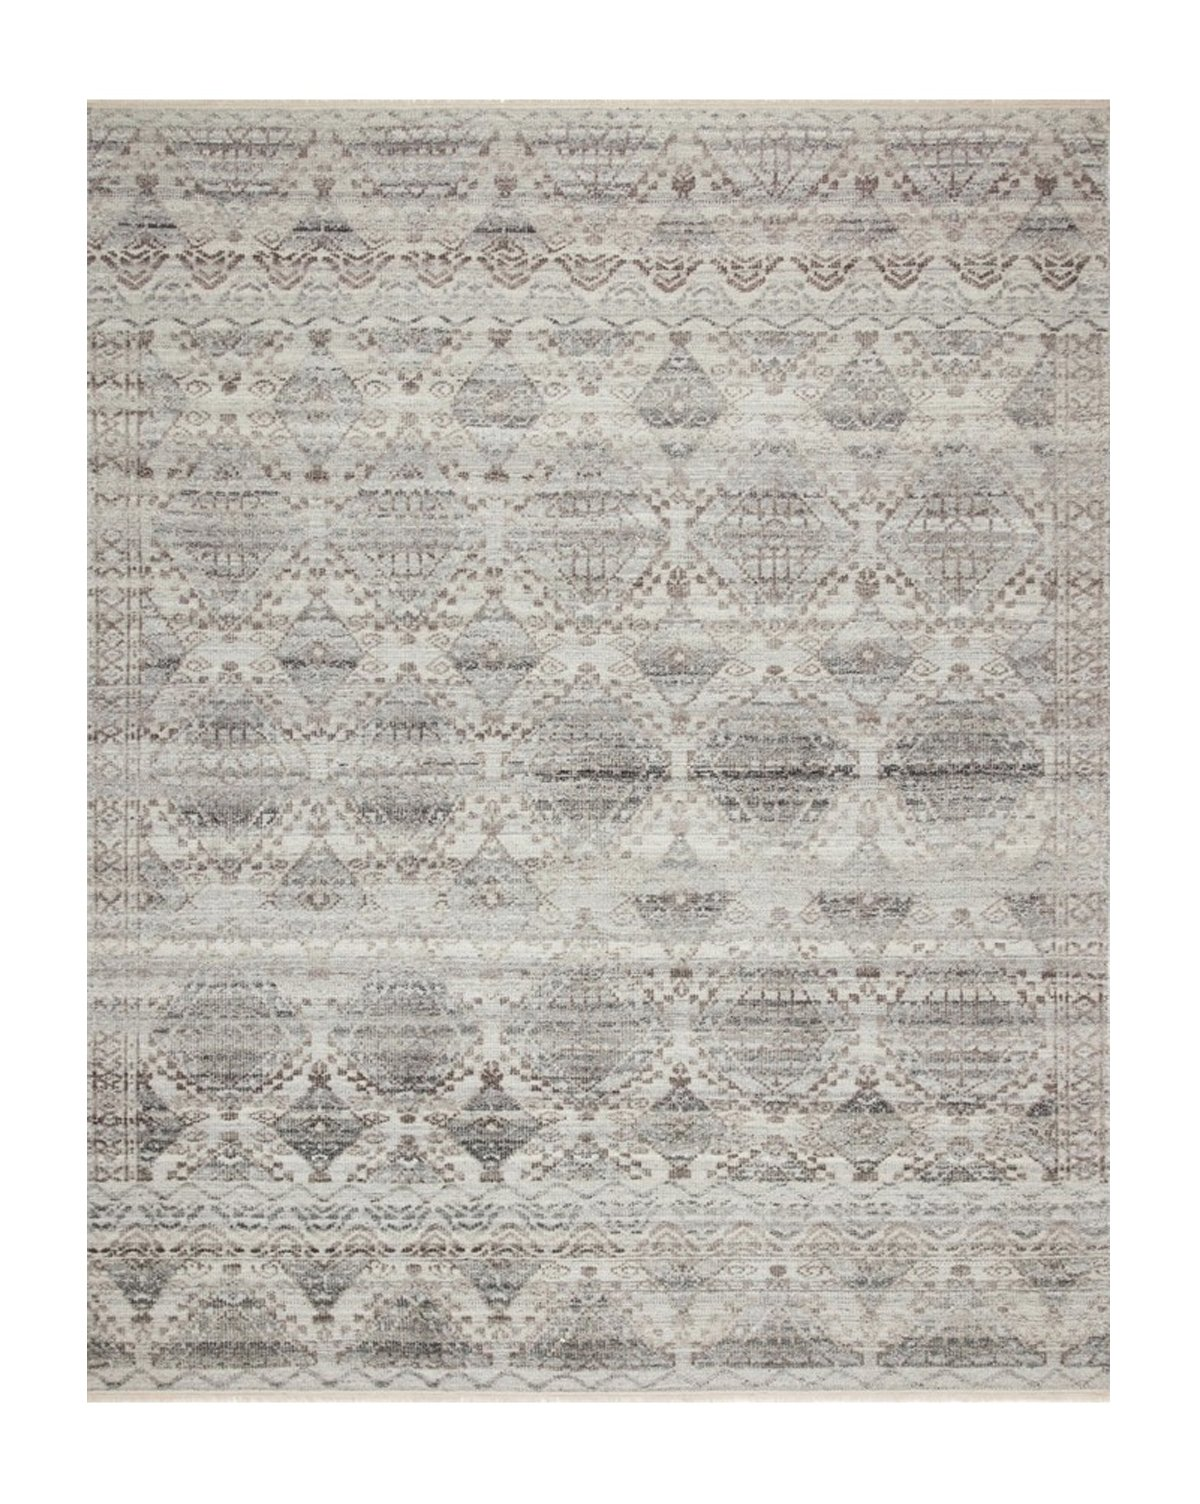 Leuven_Hand-Knotted_Rug_1.jpg